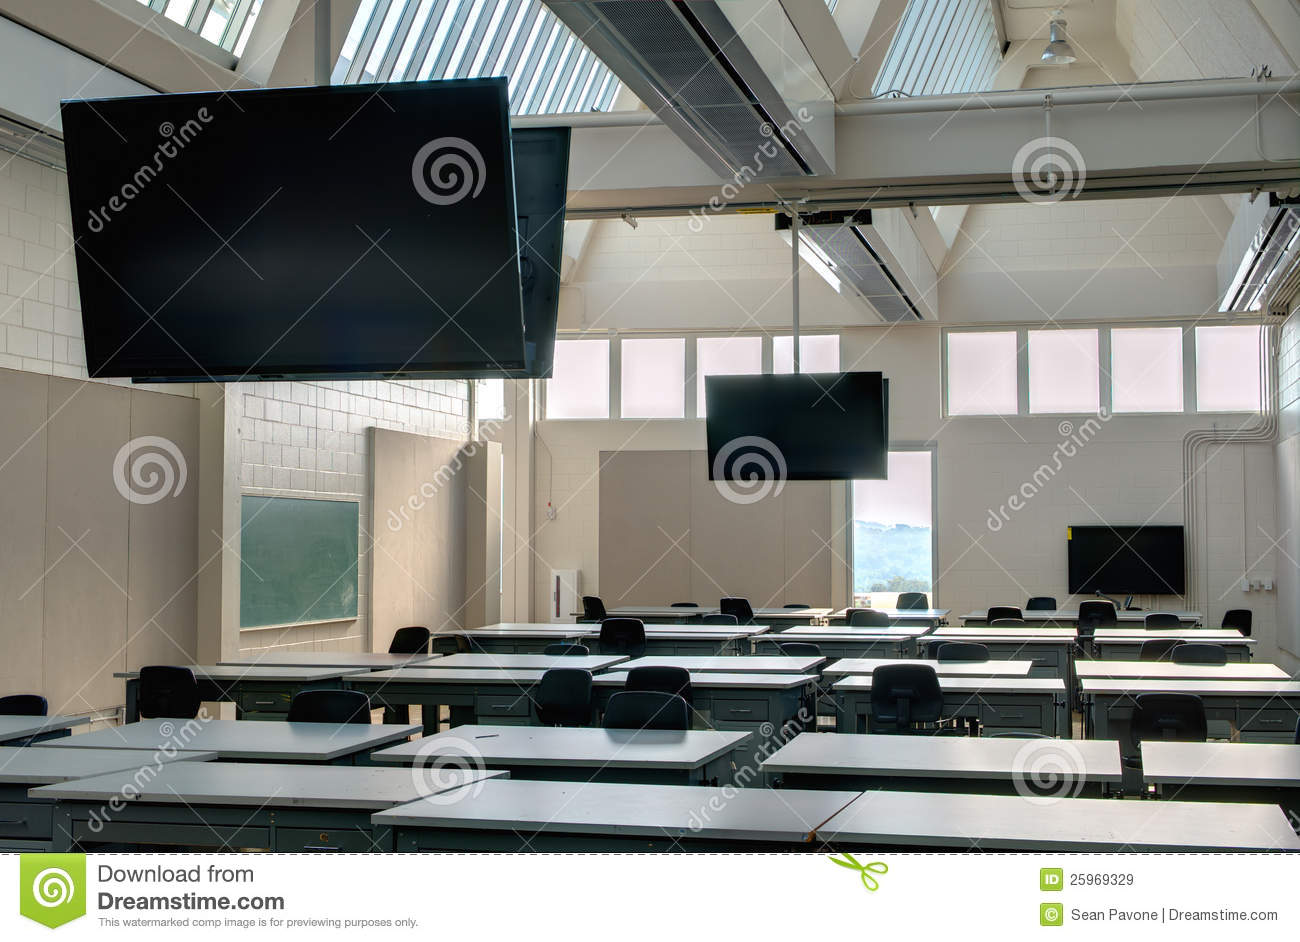 Modern Classroom Images : Modern classroom royalty free stock images image